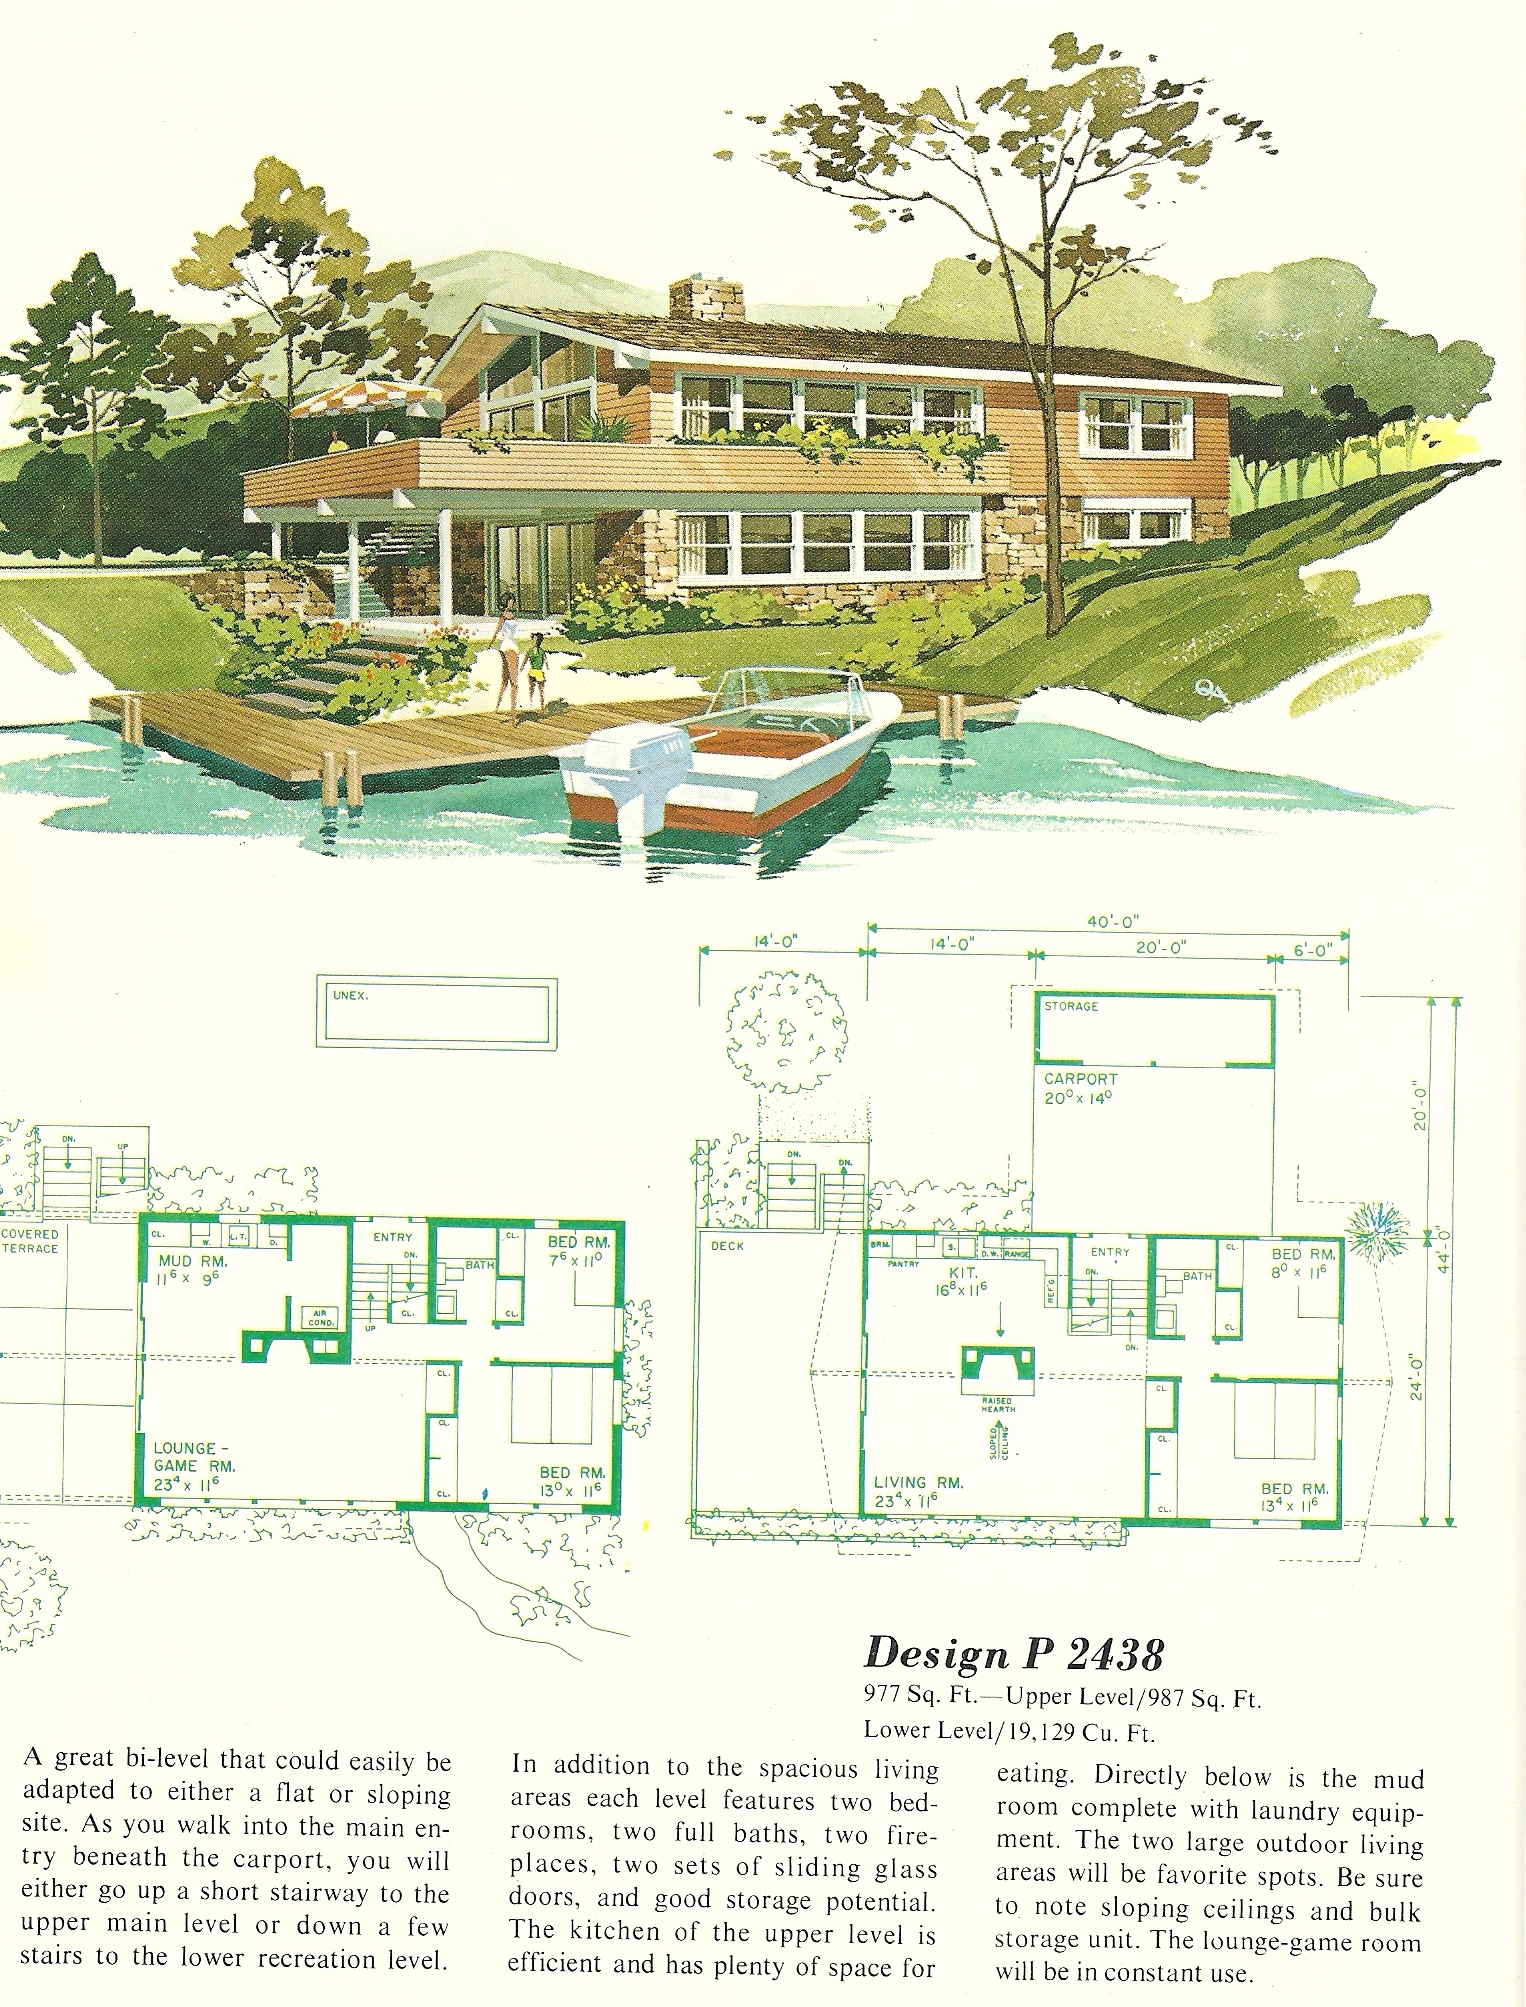 Vintage House Plans s  Vacation Homes   Antique Alter EgoVintage House Plans  Vacation Homes